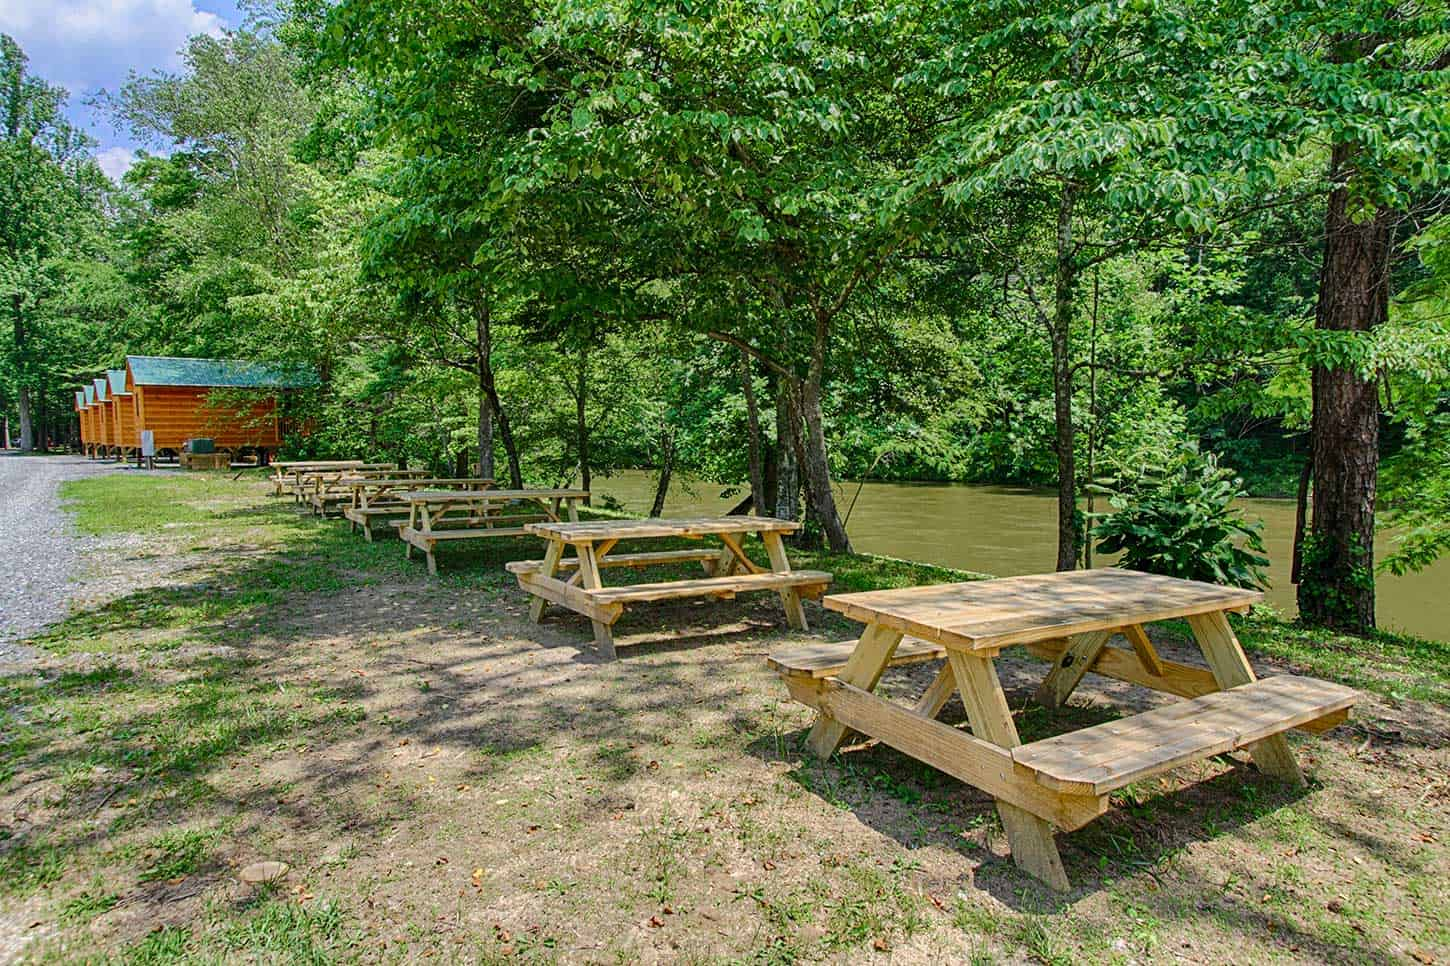 Cabins and picnic tables along the Pigeon River at a campground in the Smoky Mountains